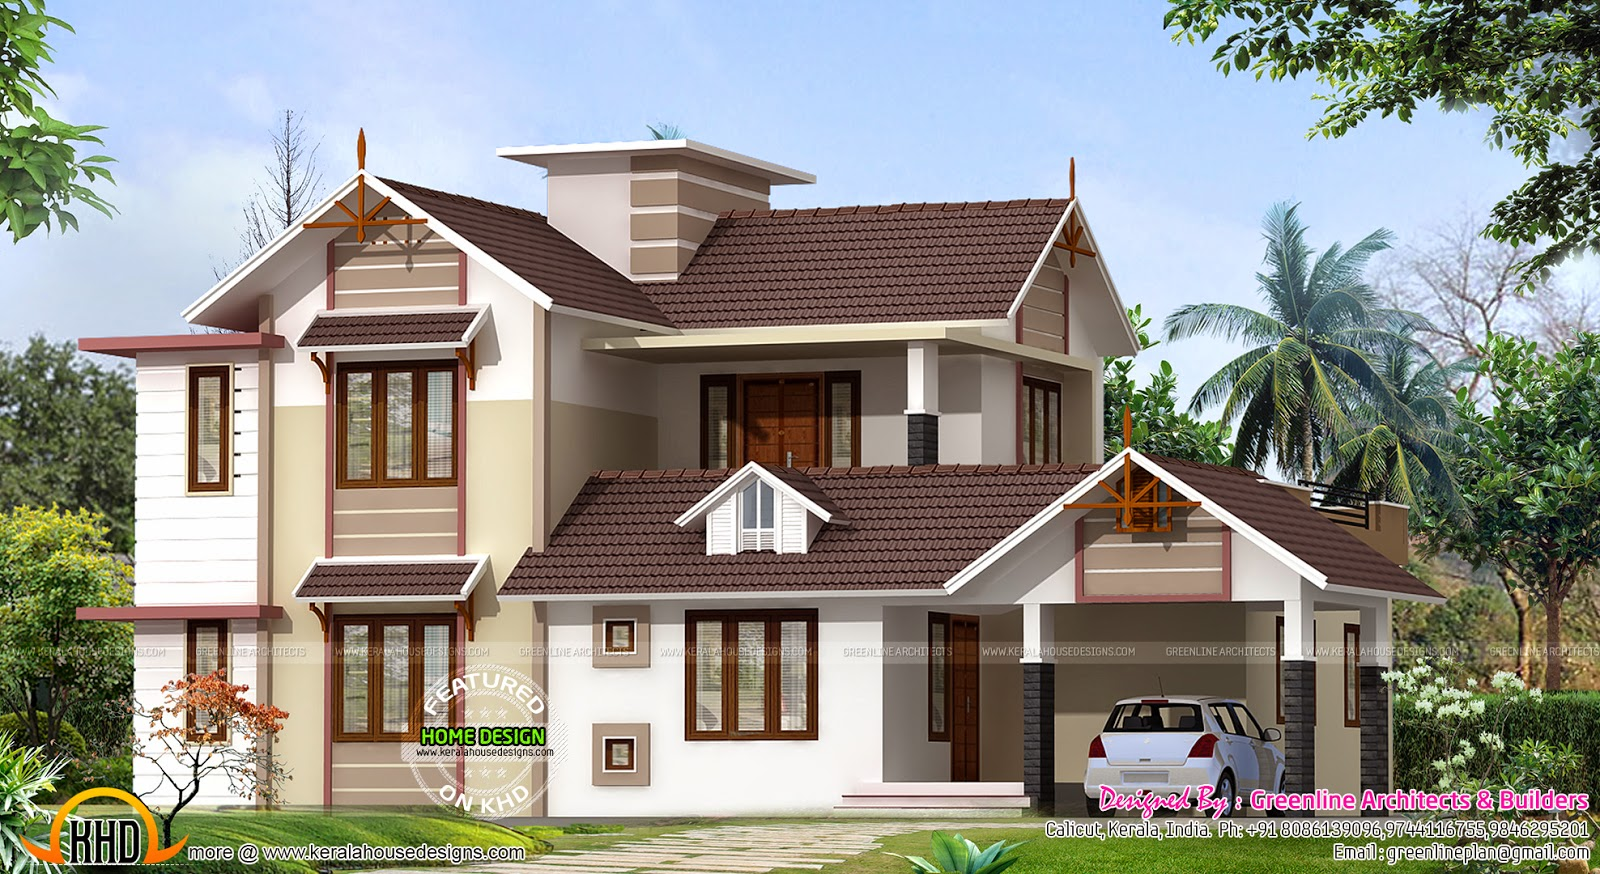 2400 sq ft new house design kerala home design and floor for New home design ideas